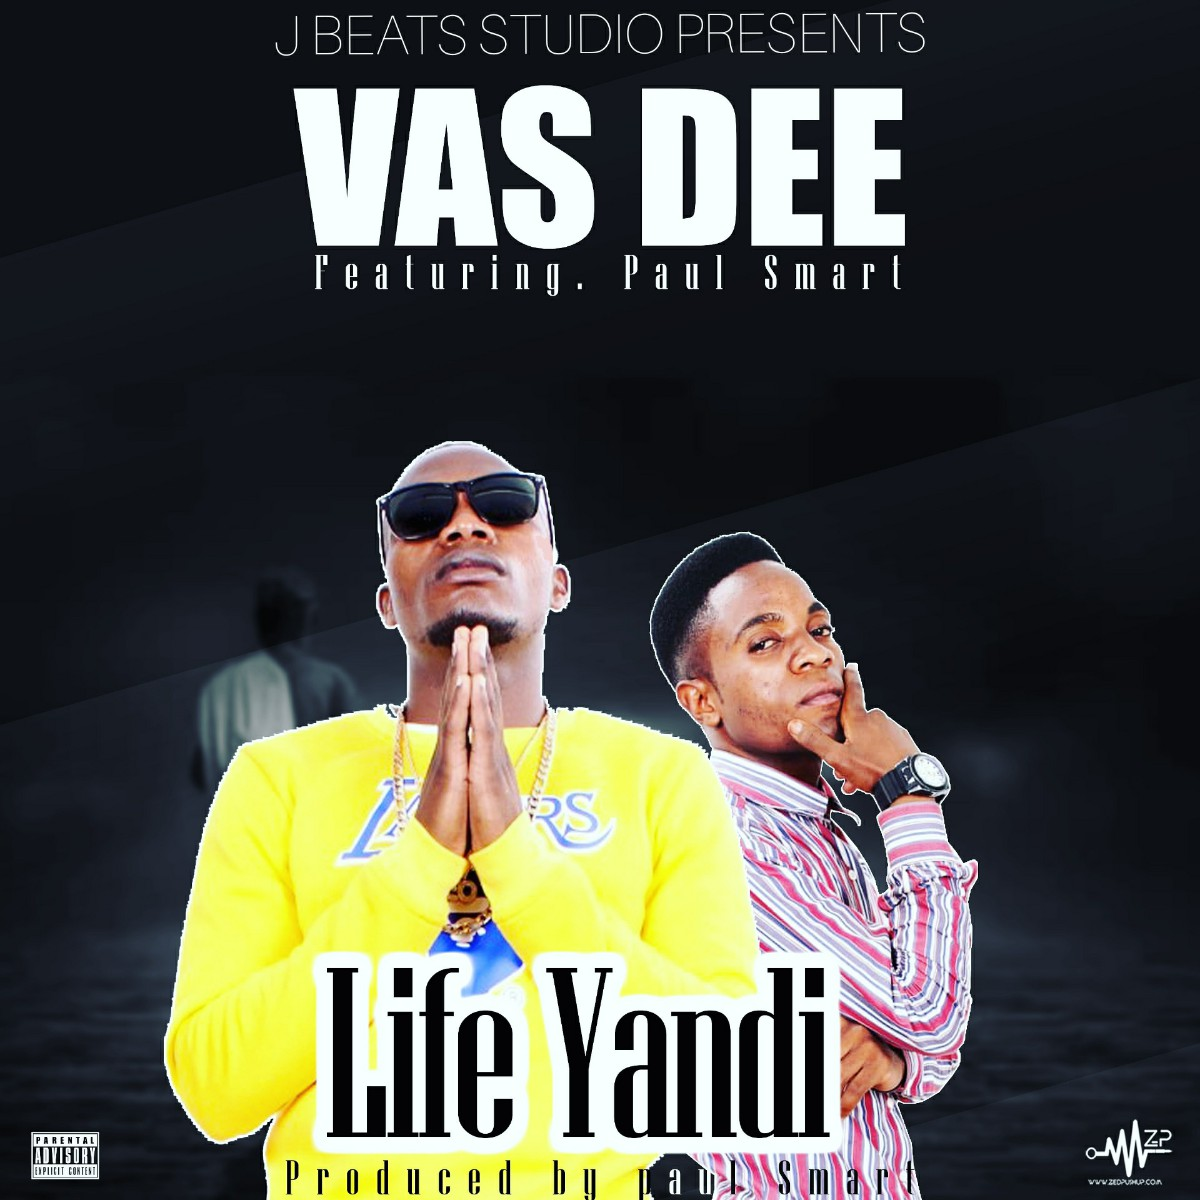 Vas Dee ft. Paul Smart - Life Yandi (Prod. Paul Smart)